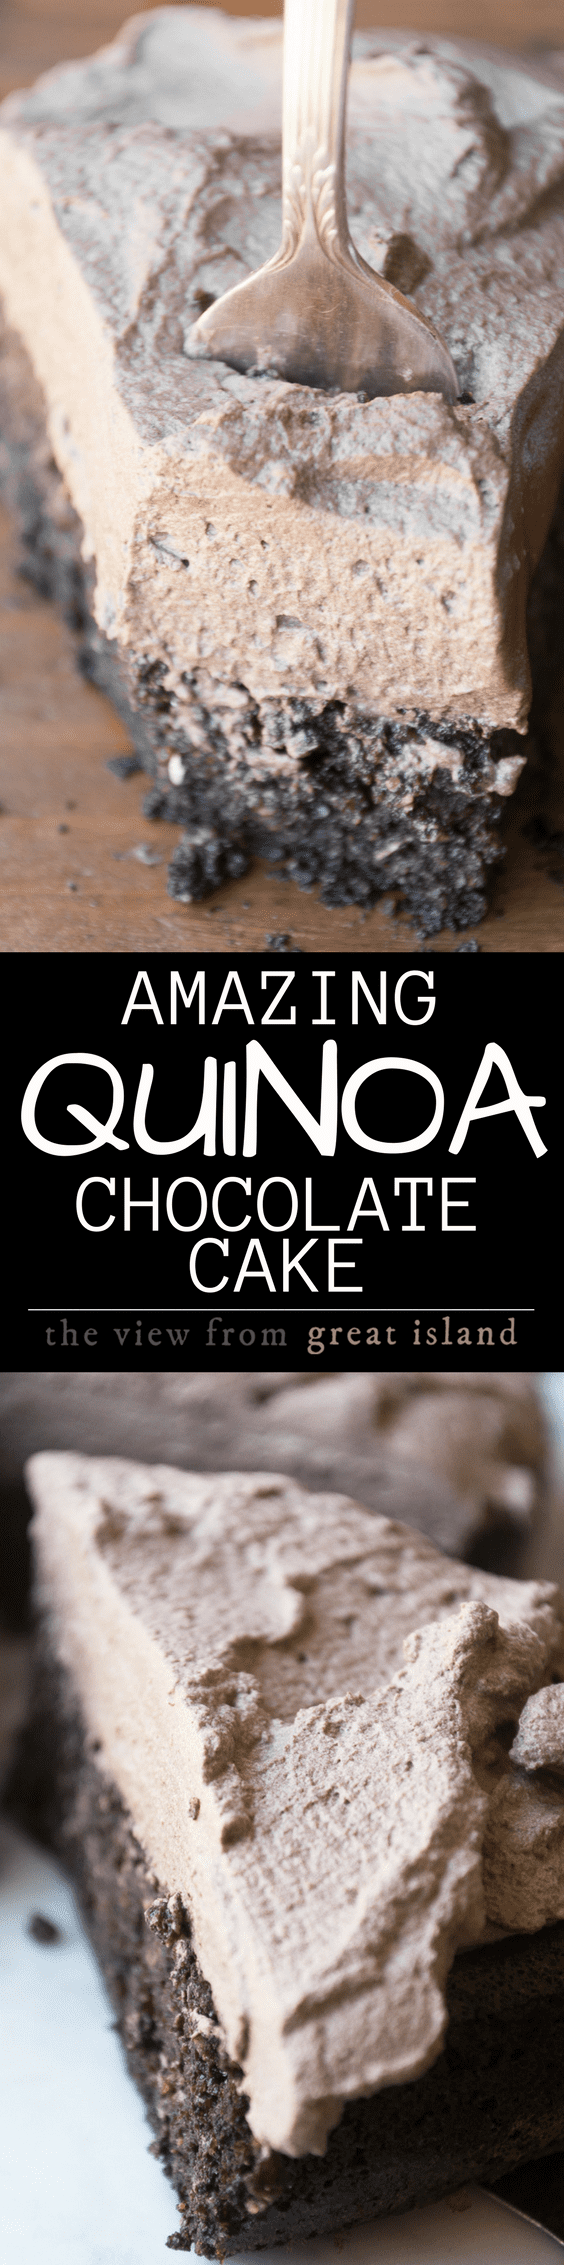 Quinoa Chocolate Cake ~ naturally gluten free and one of the moistest, fluffiest, most delicious desserts I've ever had ~ and it's all due to an unlikely ingredient.  This super food cake also happens to be super easy, just whip it up in the blender and enjoy! #glutenfree #bestglutenfreecake #glutenfreecake #chocolatecake #bestchocolatecake #snackcake #dessert #easycake #chocolatecakerecipe #recipe #healthycake